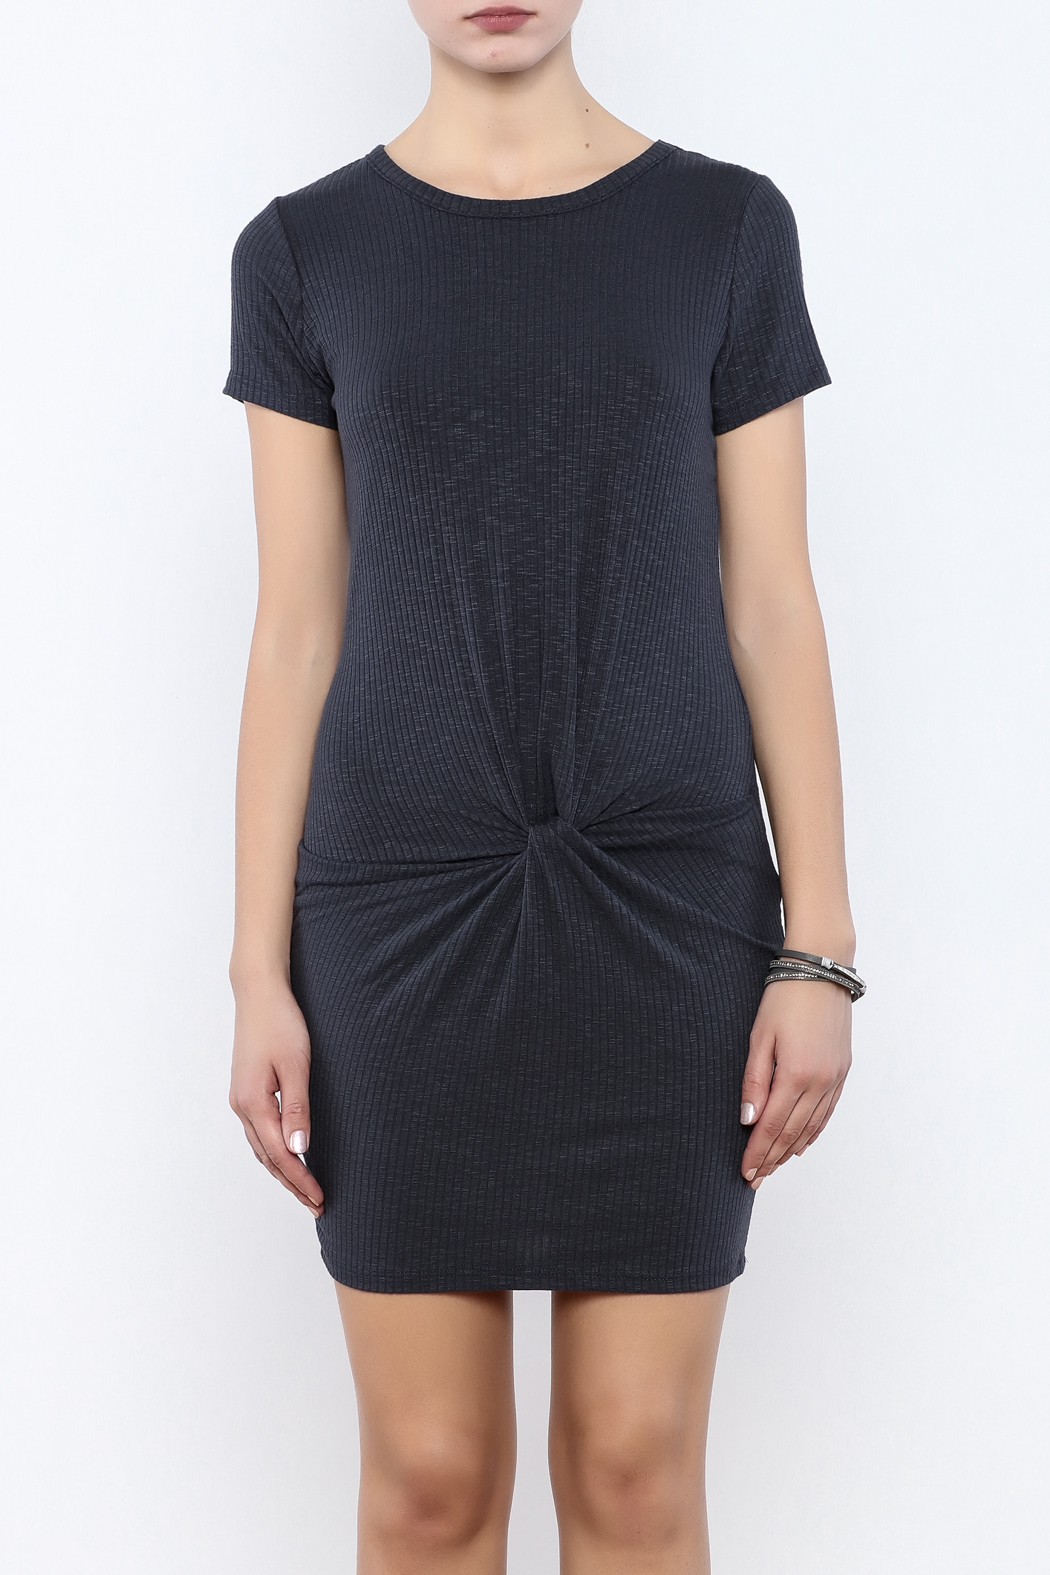 Coveted Clothing Ribbed Knotted Dress - Side Cropped Image